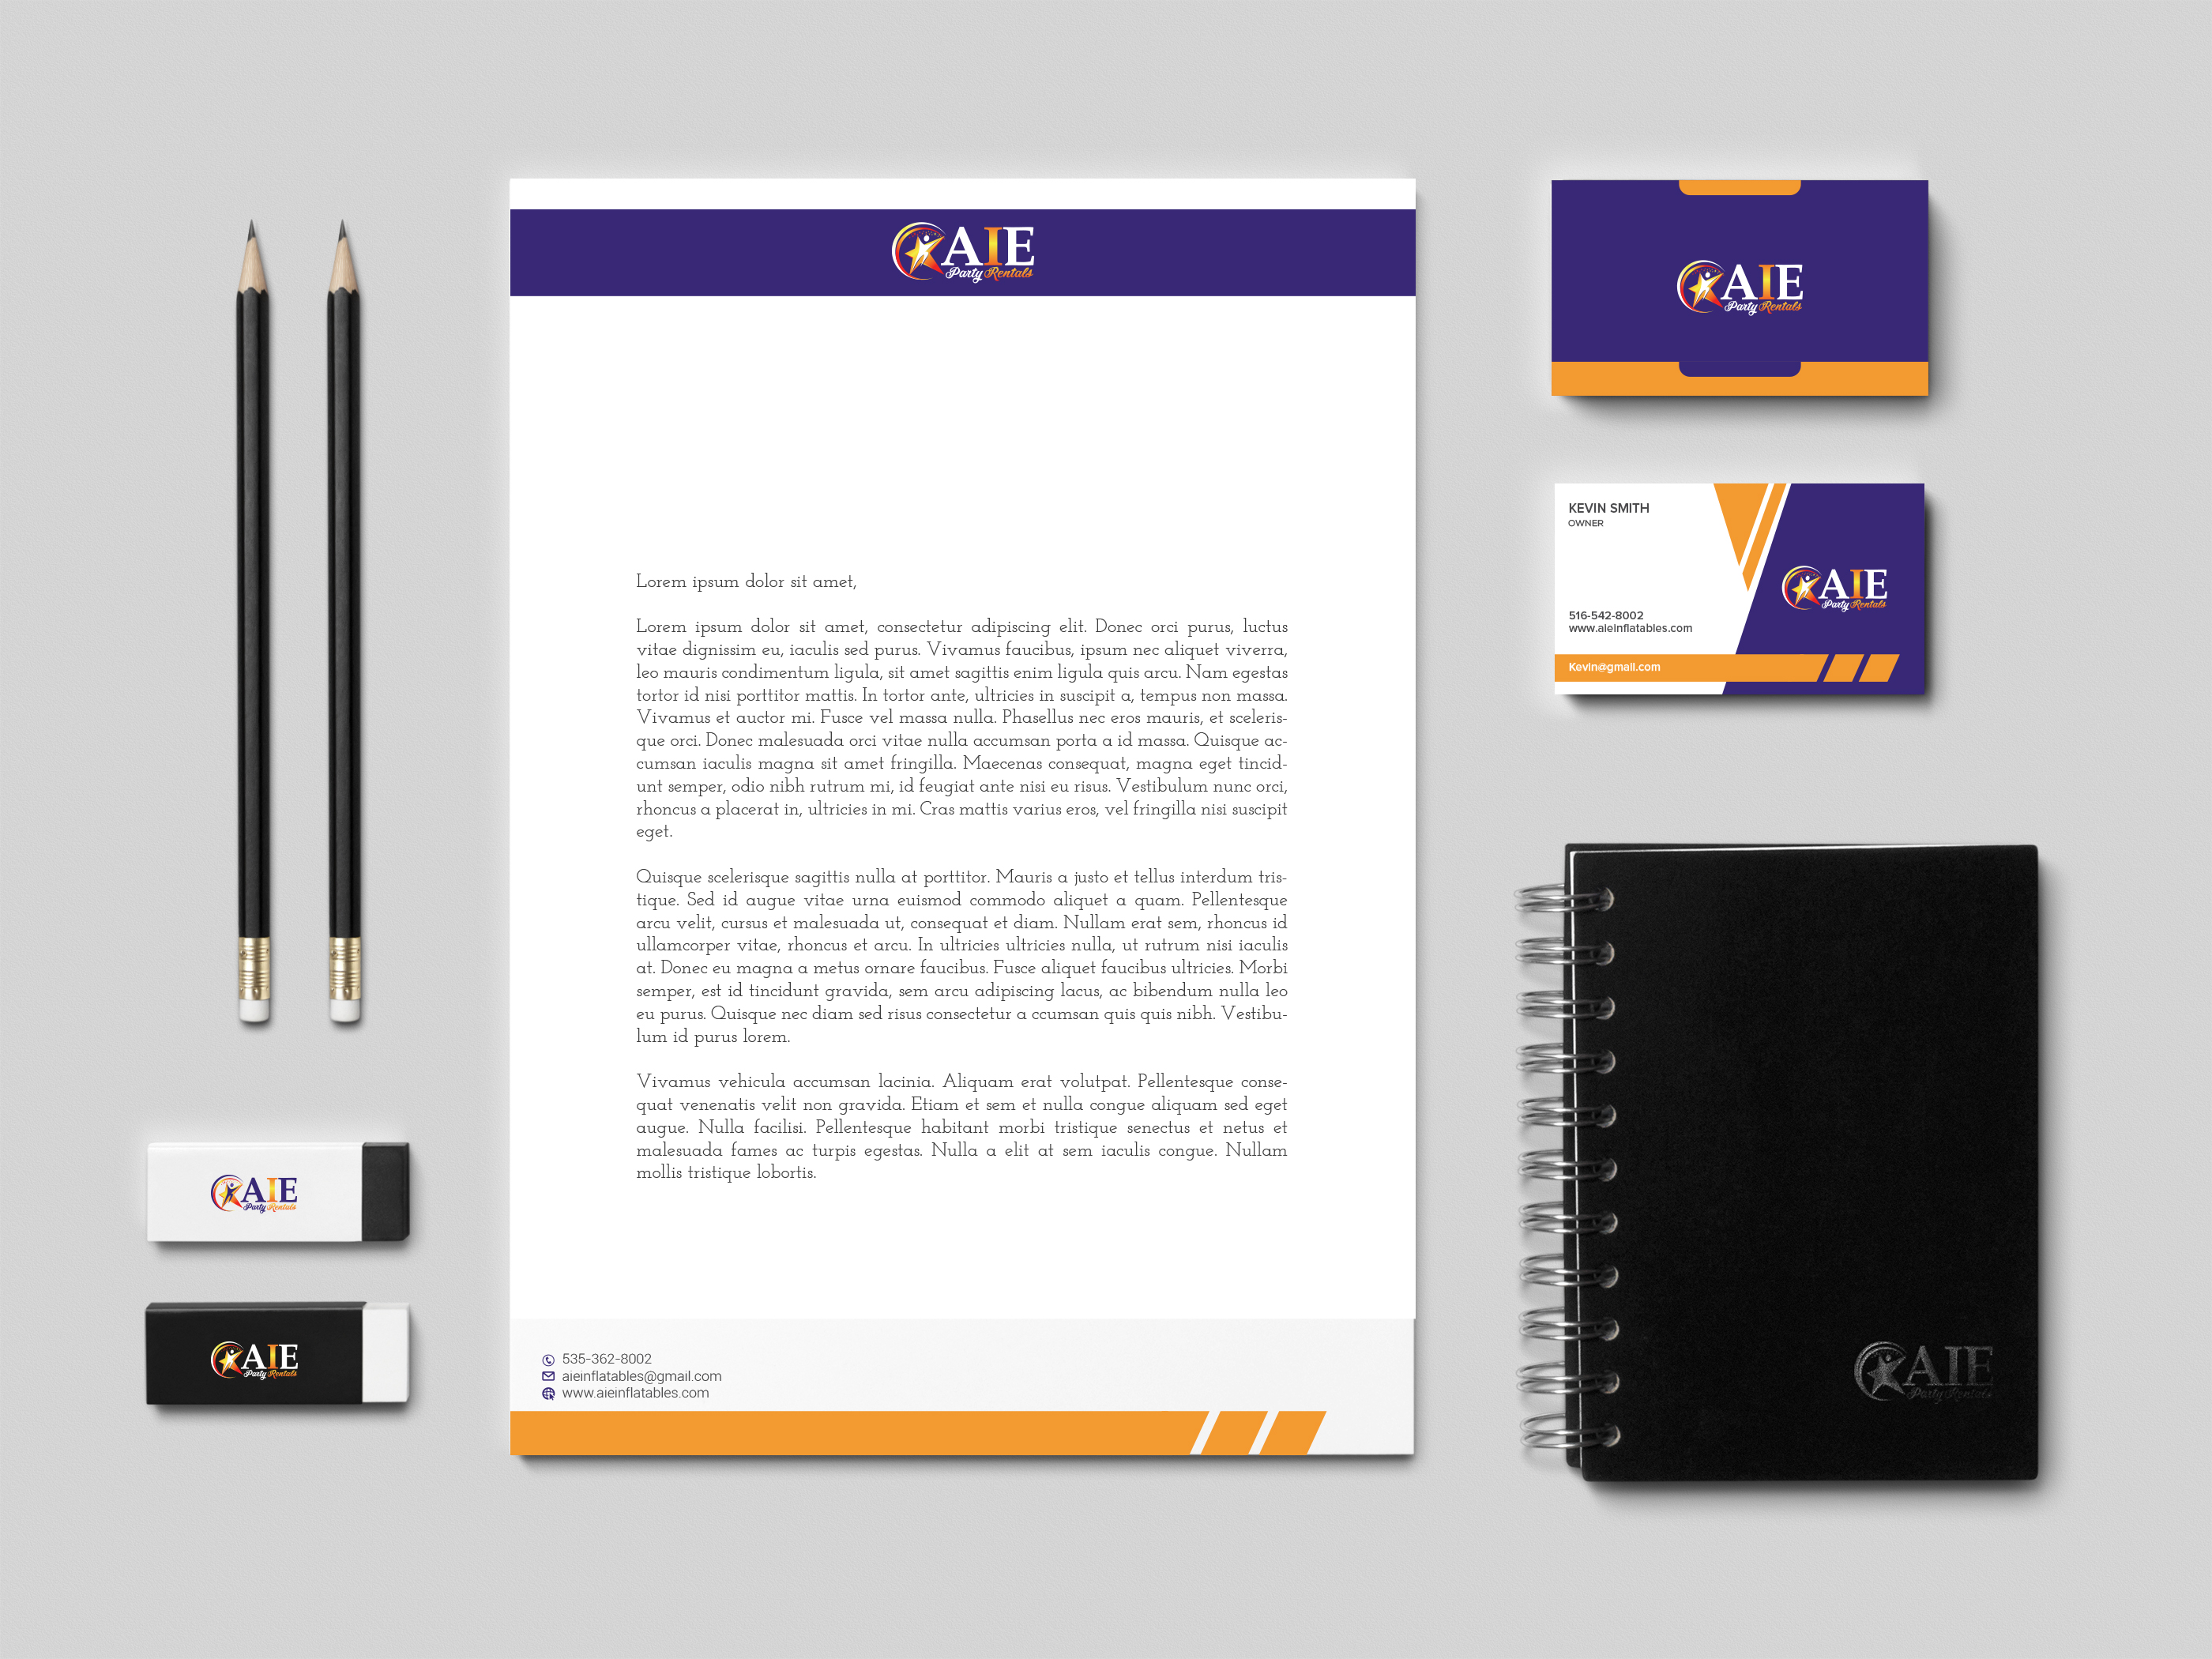 Stationery Design Template for AIE Party Rentals - Logo Design Deck